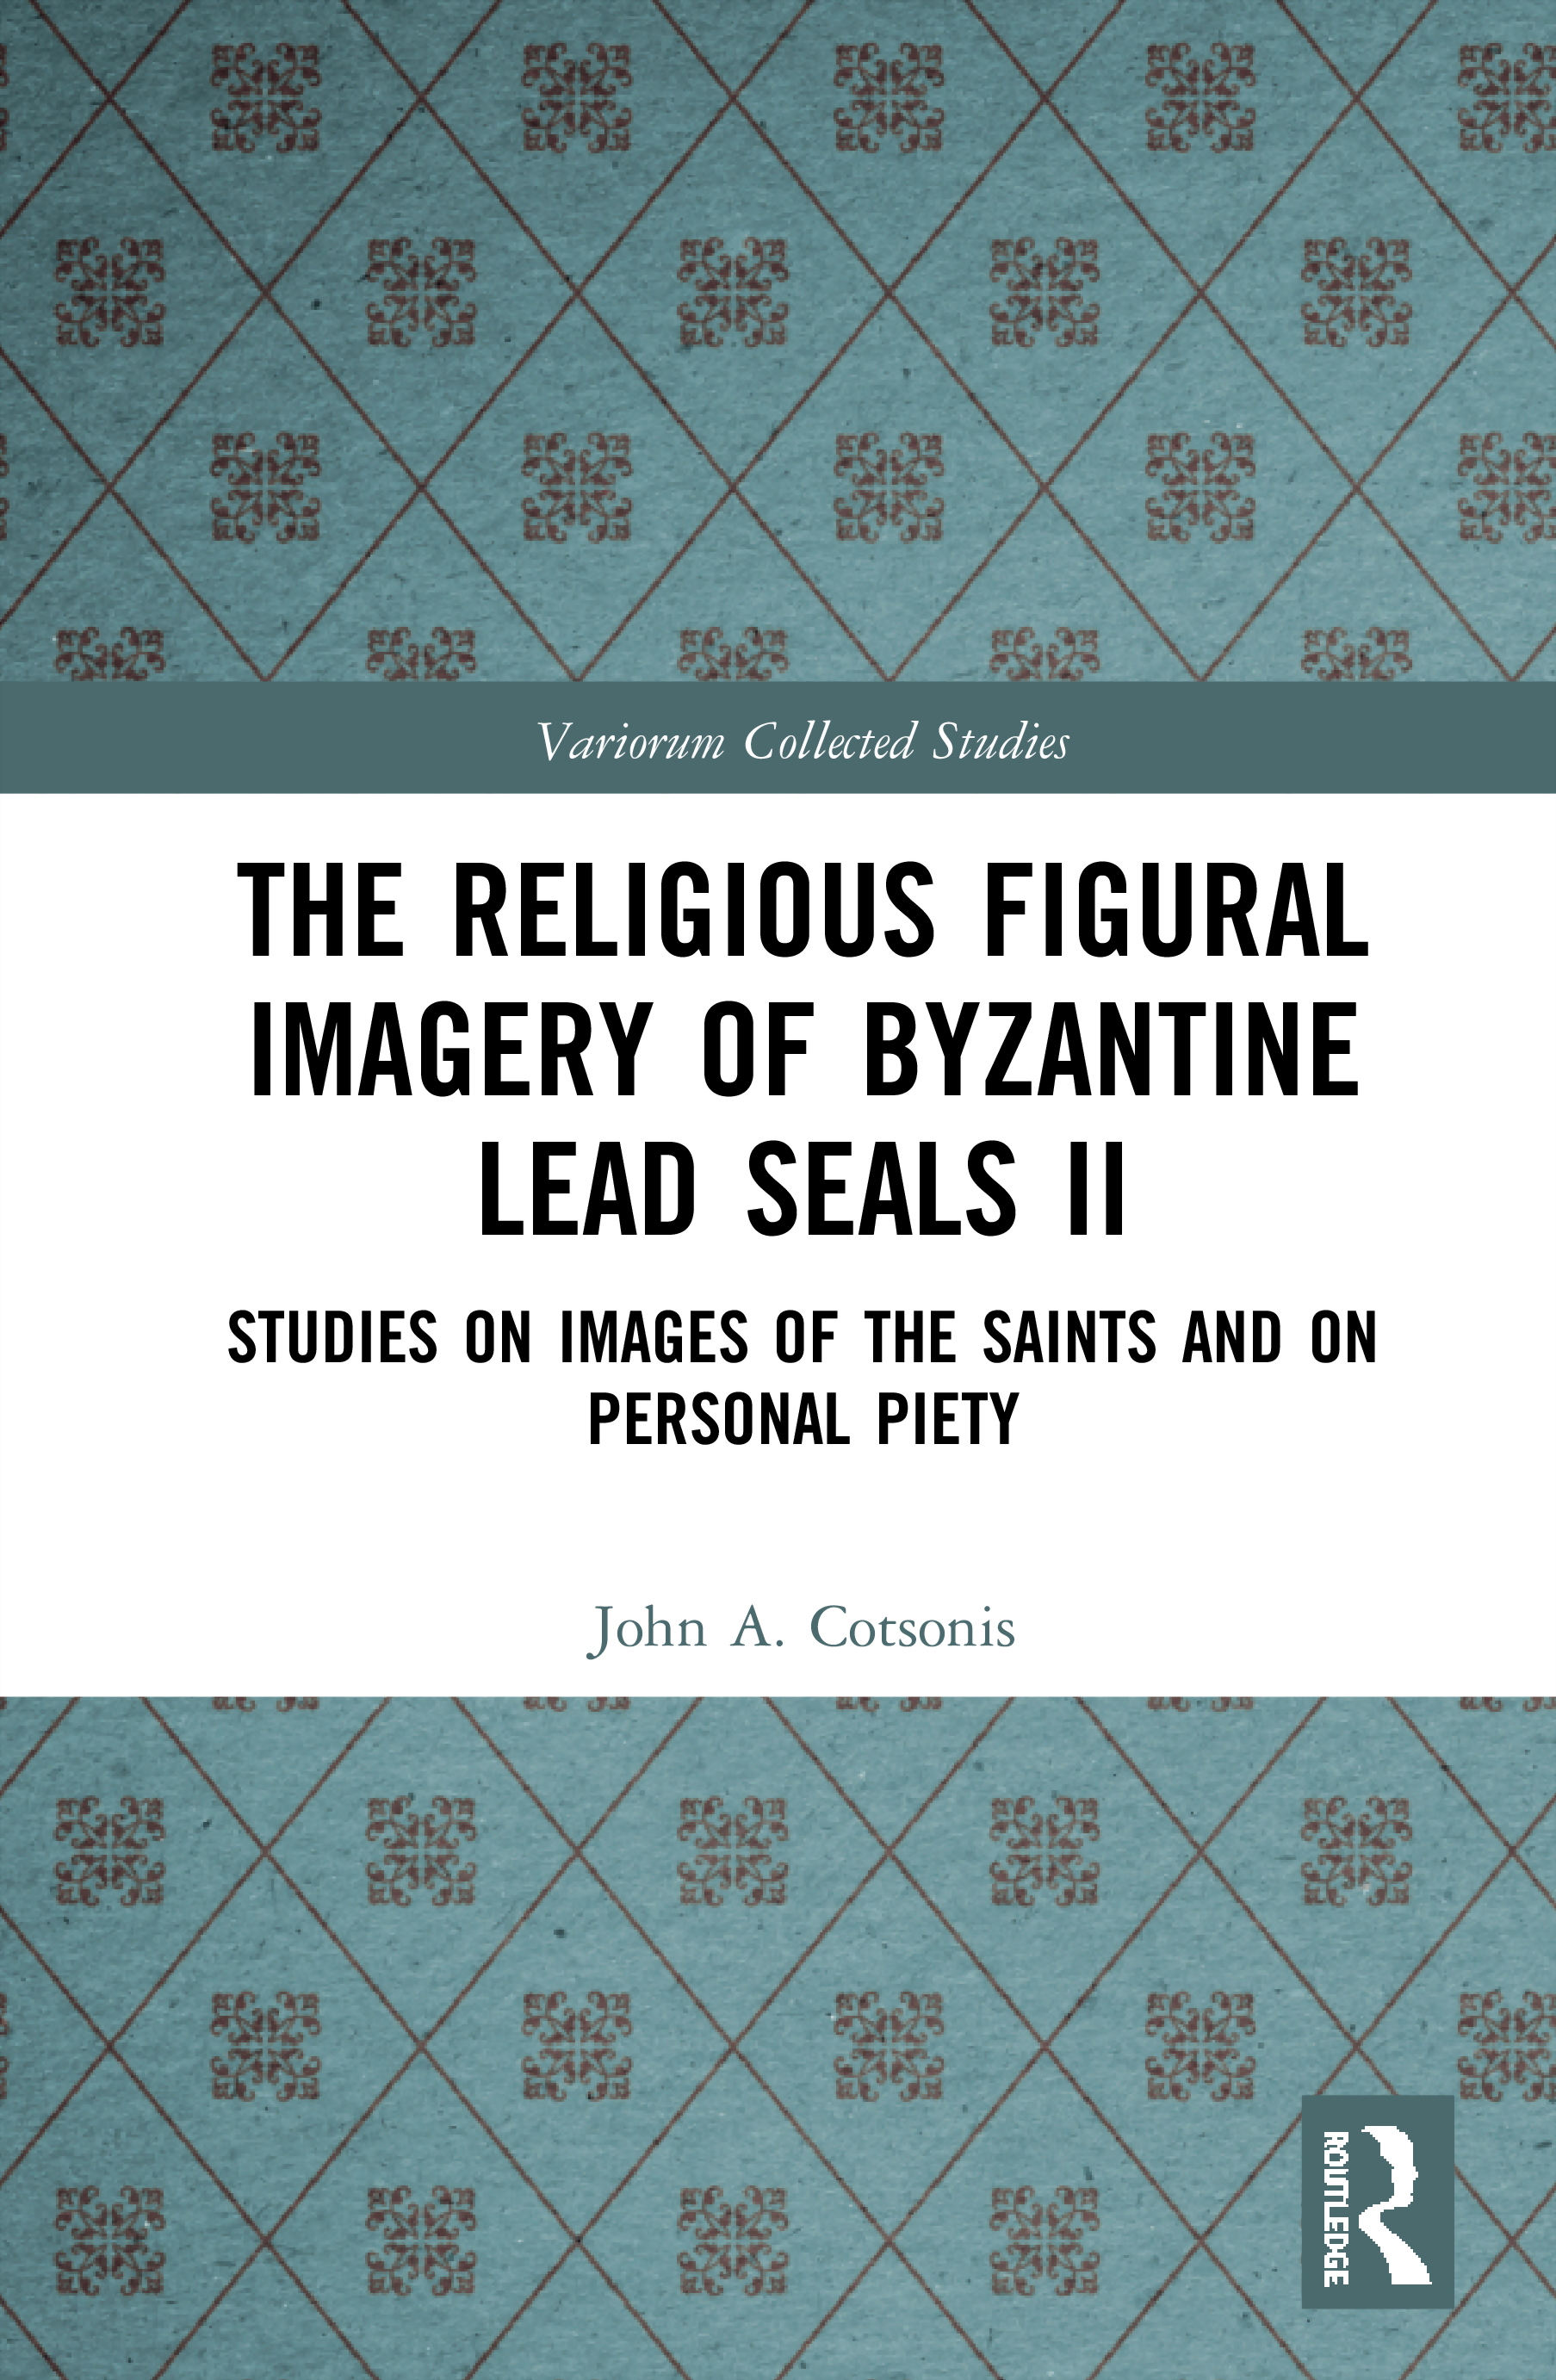 The Religious Figural Imagery of Byzantine Lead Seals II: Studies on Images of the Saints and on Personal Piety, 1st Edition (Hardback) book cover